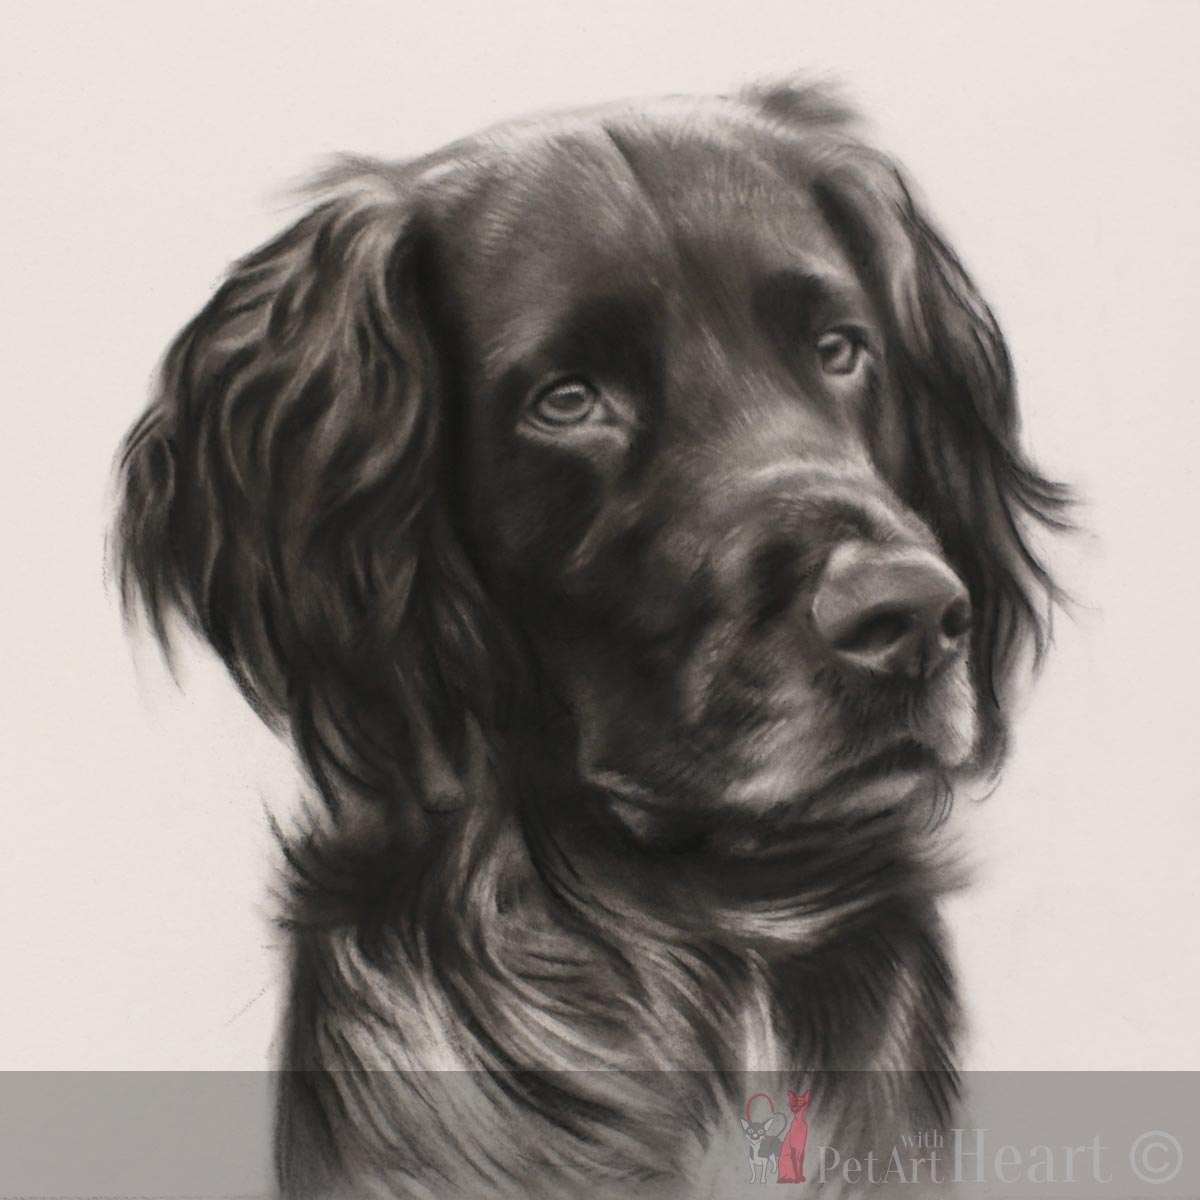 Second stage of dog Faxe in Pastel